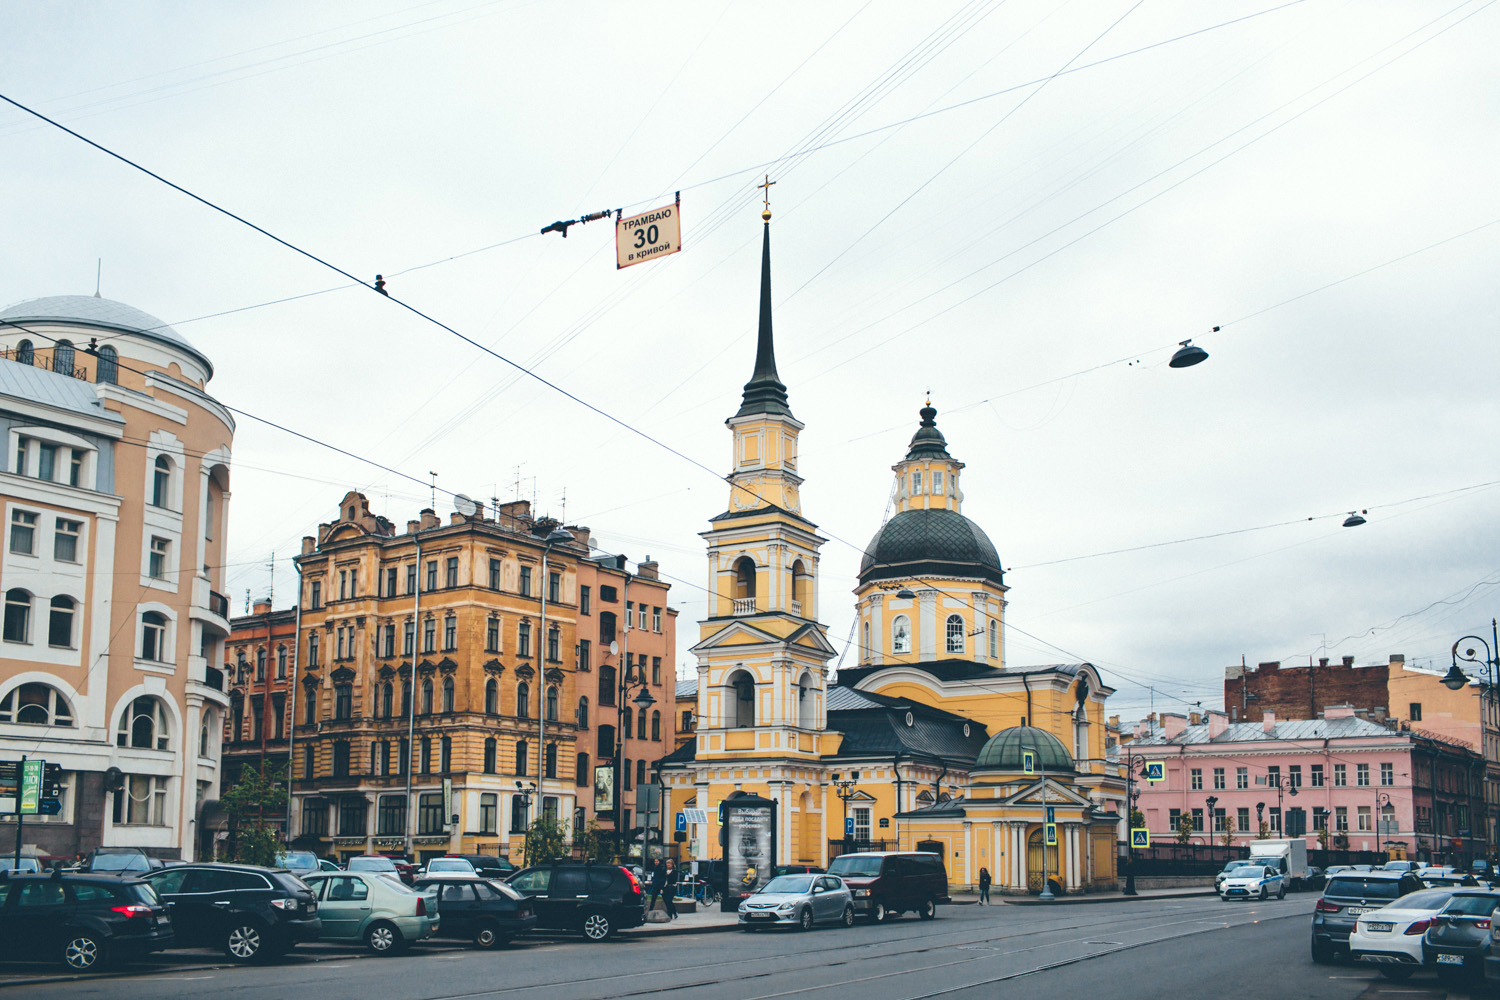 St-Petersburg by Katya Rezvaya-2